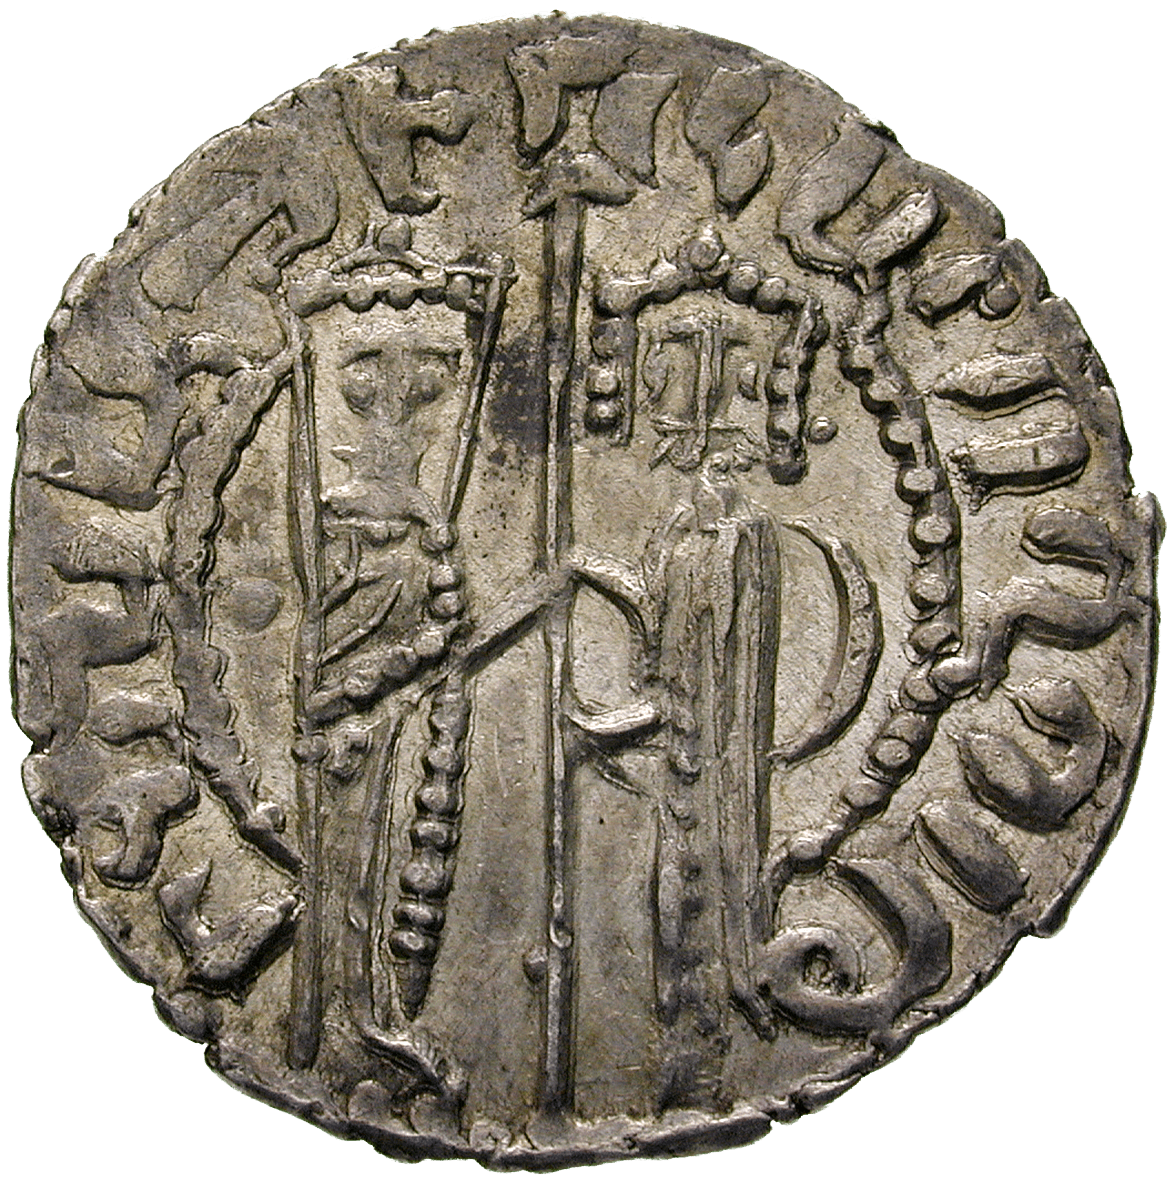 Kingdom of Lesser Armenia in Cilicia, Zabel and Hethum I, Tram (obverse)